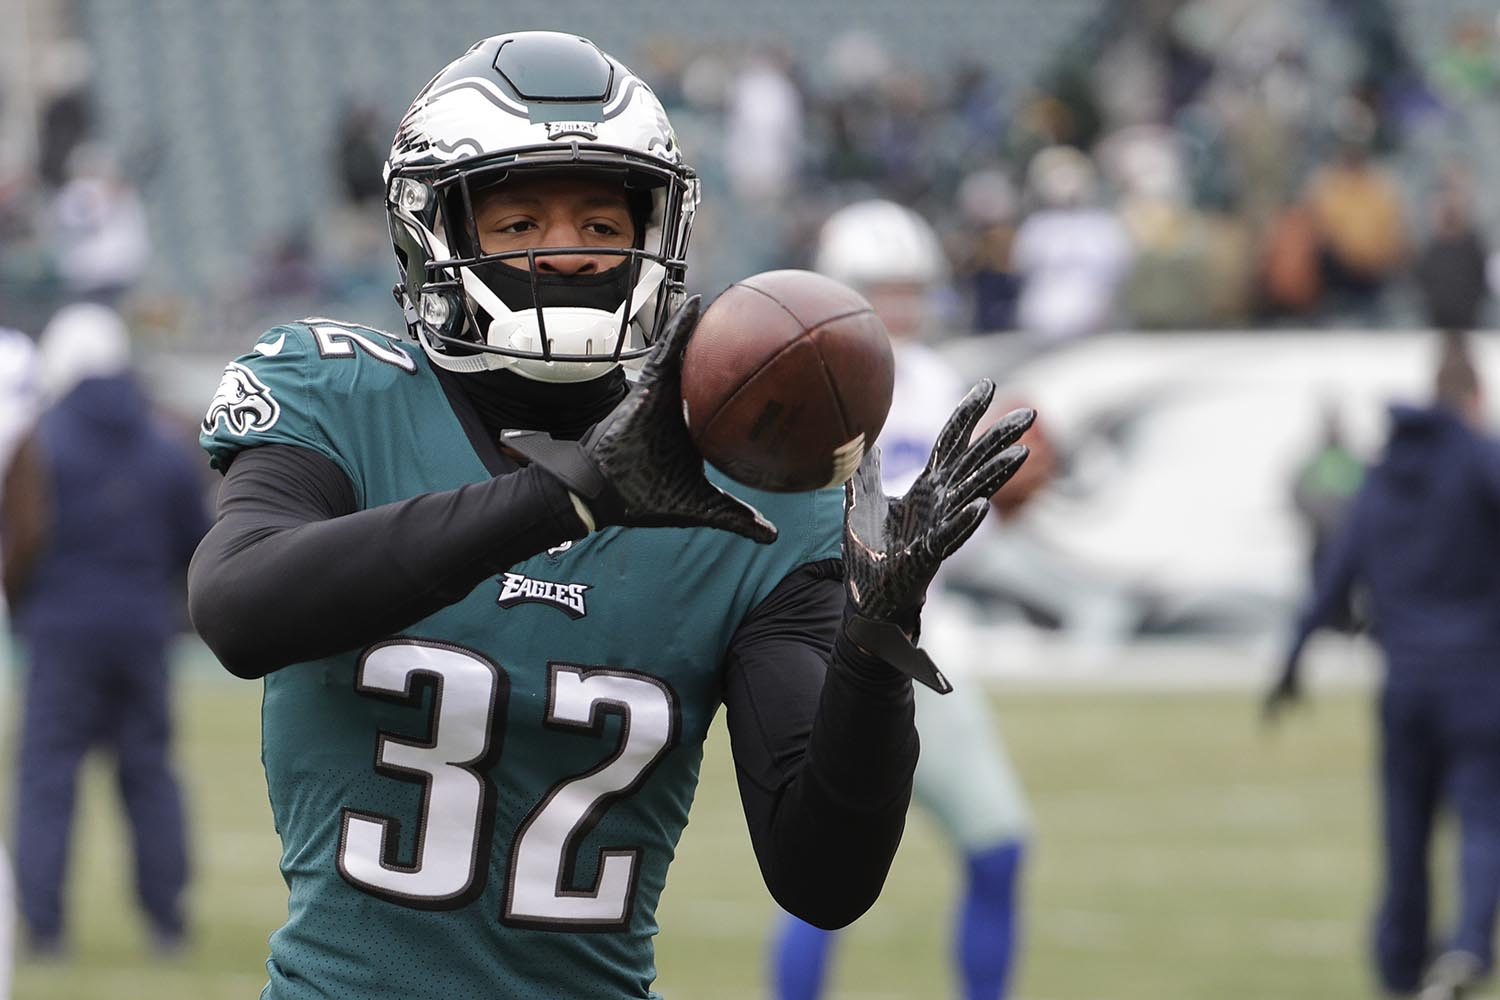 "<div class=""meta image-caption""><div class=""origin-logo origin-image ap""><span>AP</span></div><span class=""caption-text"">Philadelphia Eagles' cornerback Rasul Douglas is a native of East Orange, NJ. (AP Photo/Chris Szagola)</span></div>"